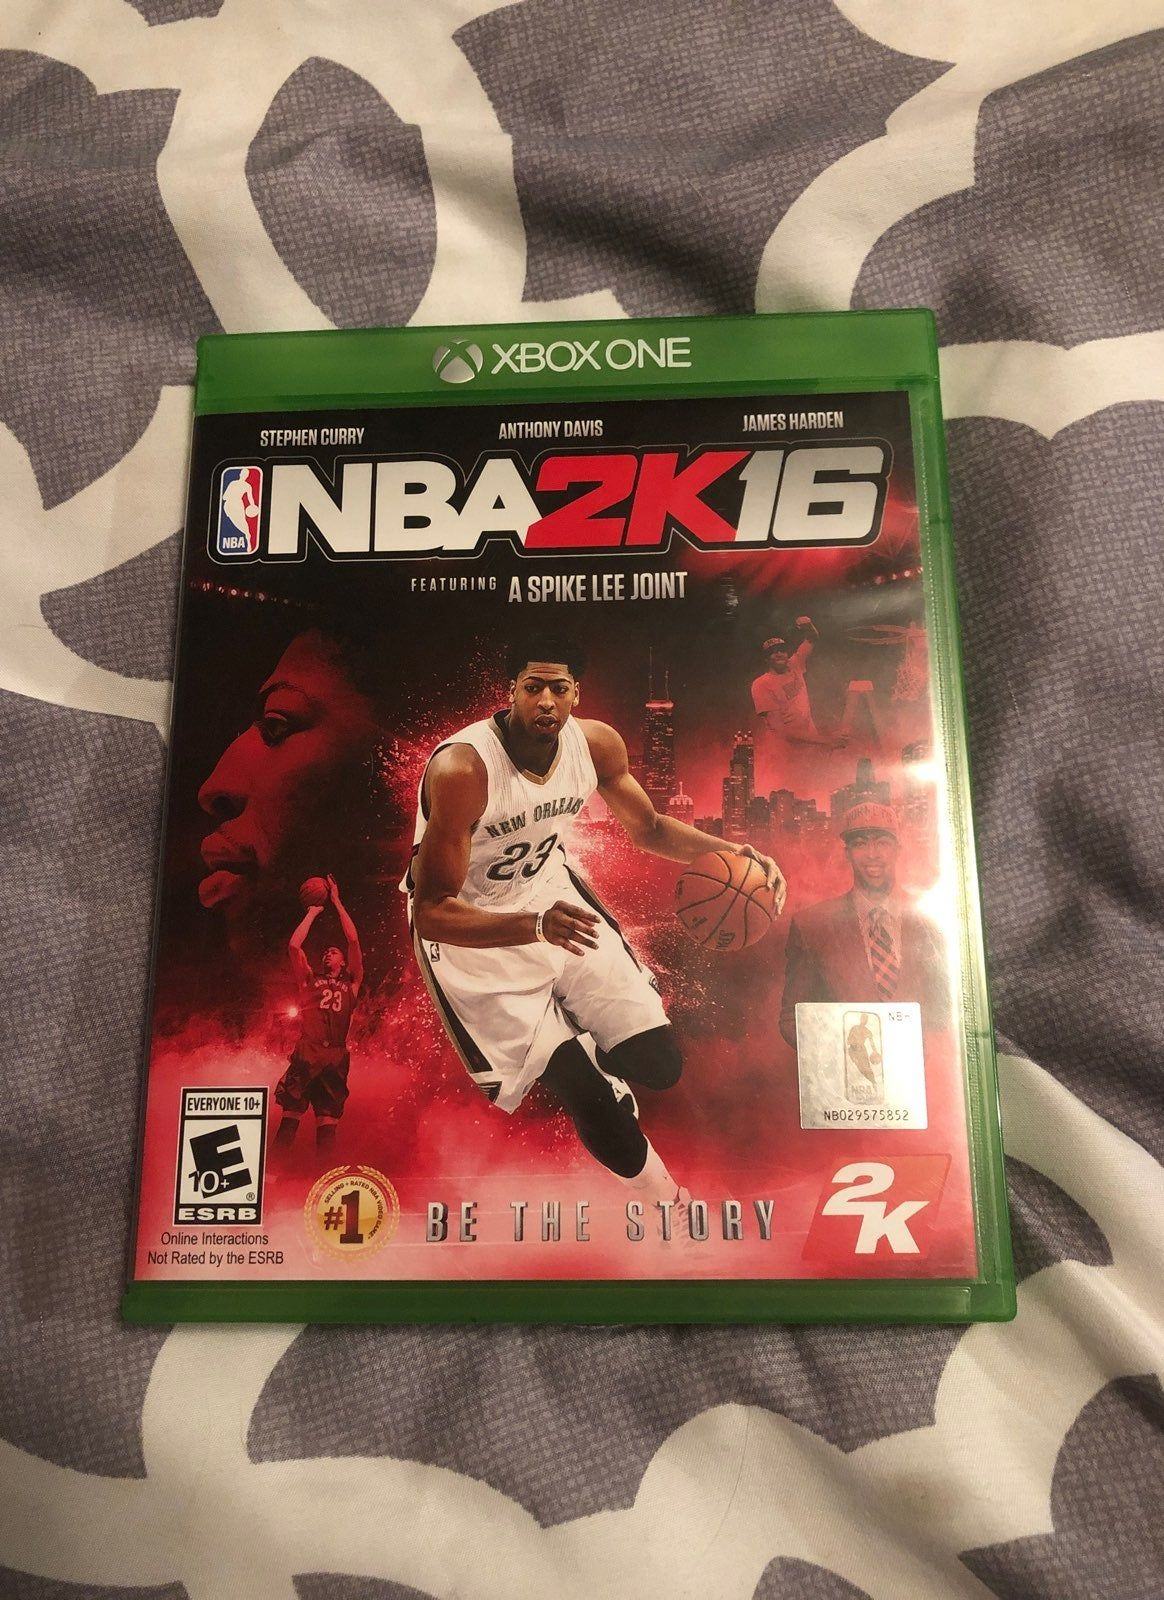 Nba 2k16 For Xbox One No Scratches On Disc Includes 3 Cards